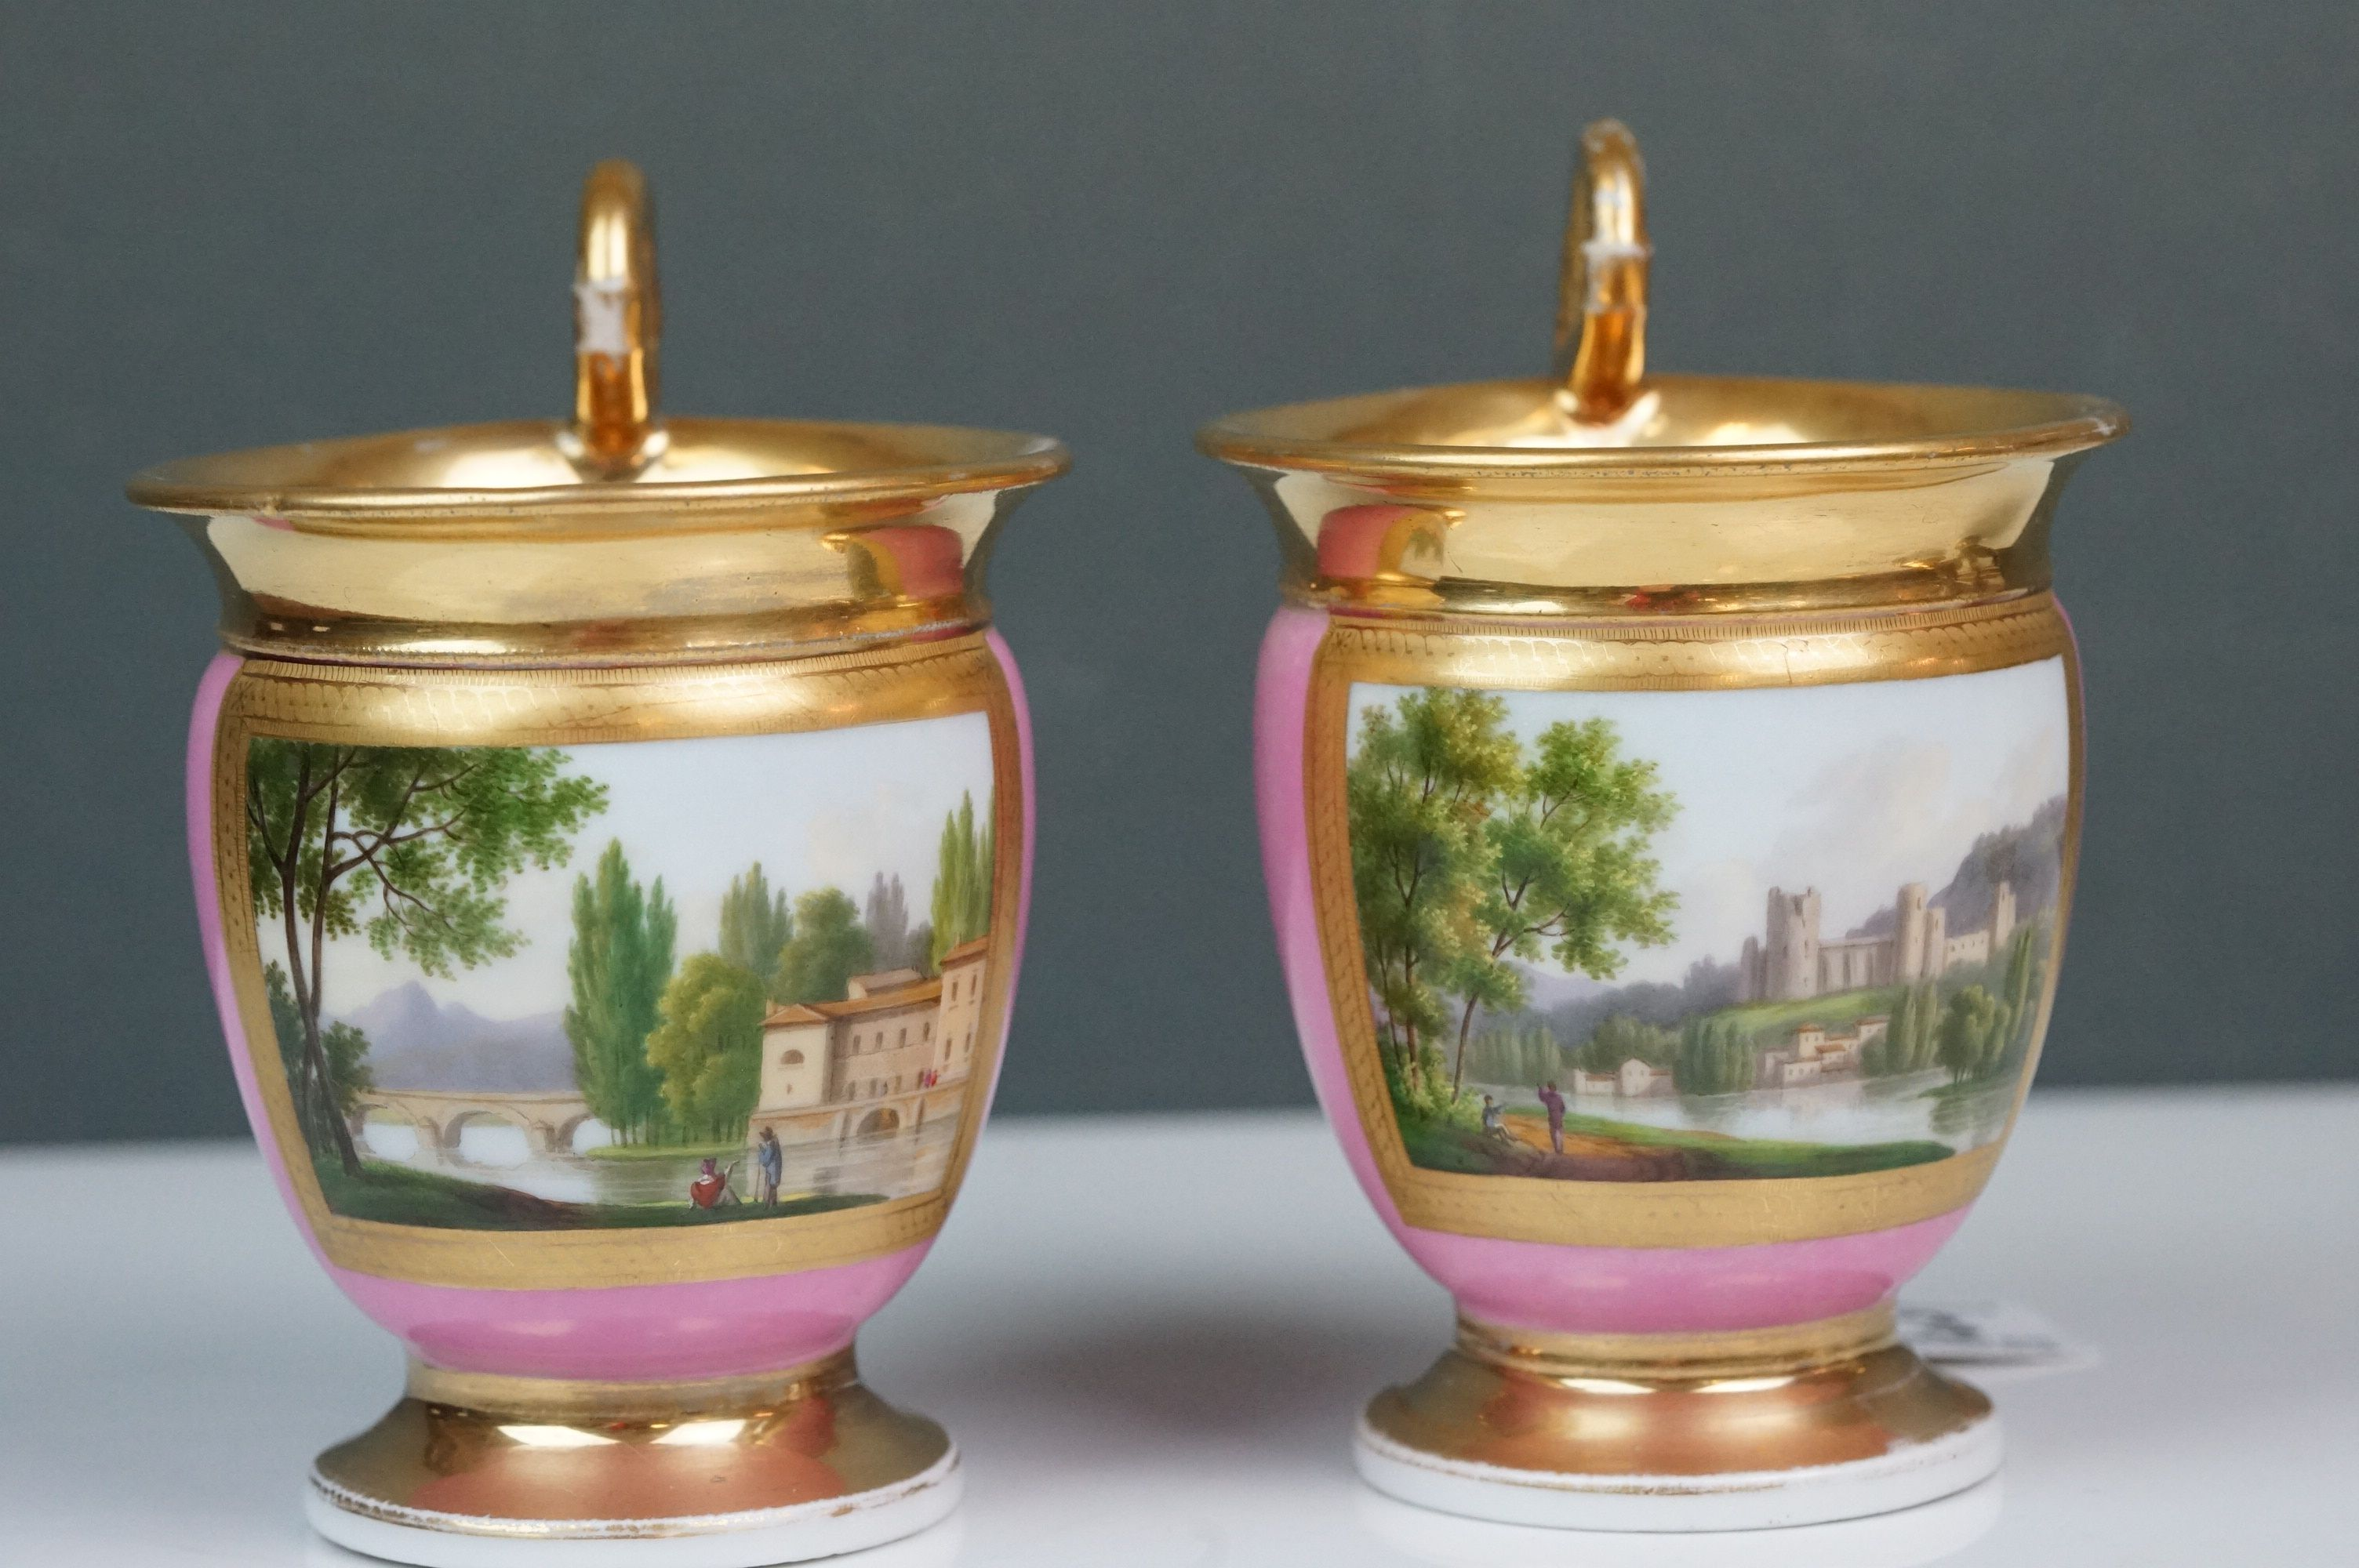 Pair of hand painted Dresden cups, each depicting a different scene: castle and lake scene with - Image 5 of 10